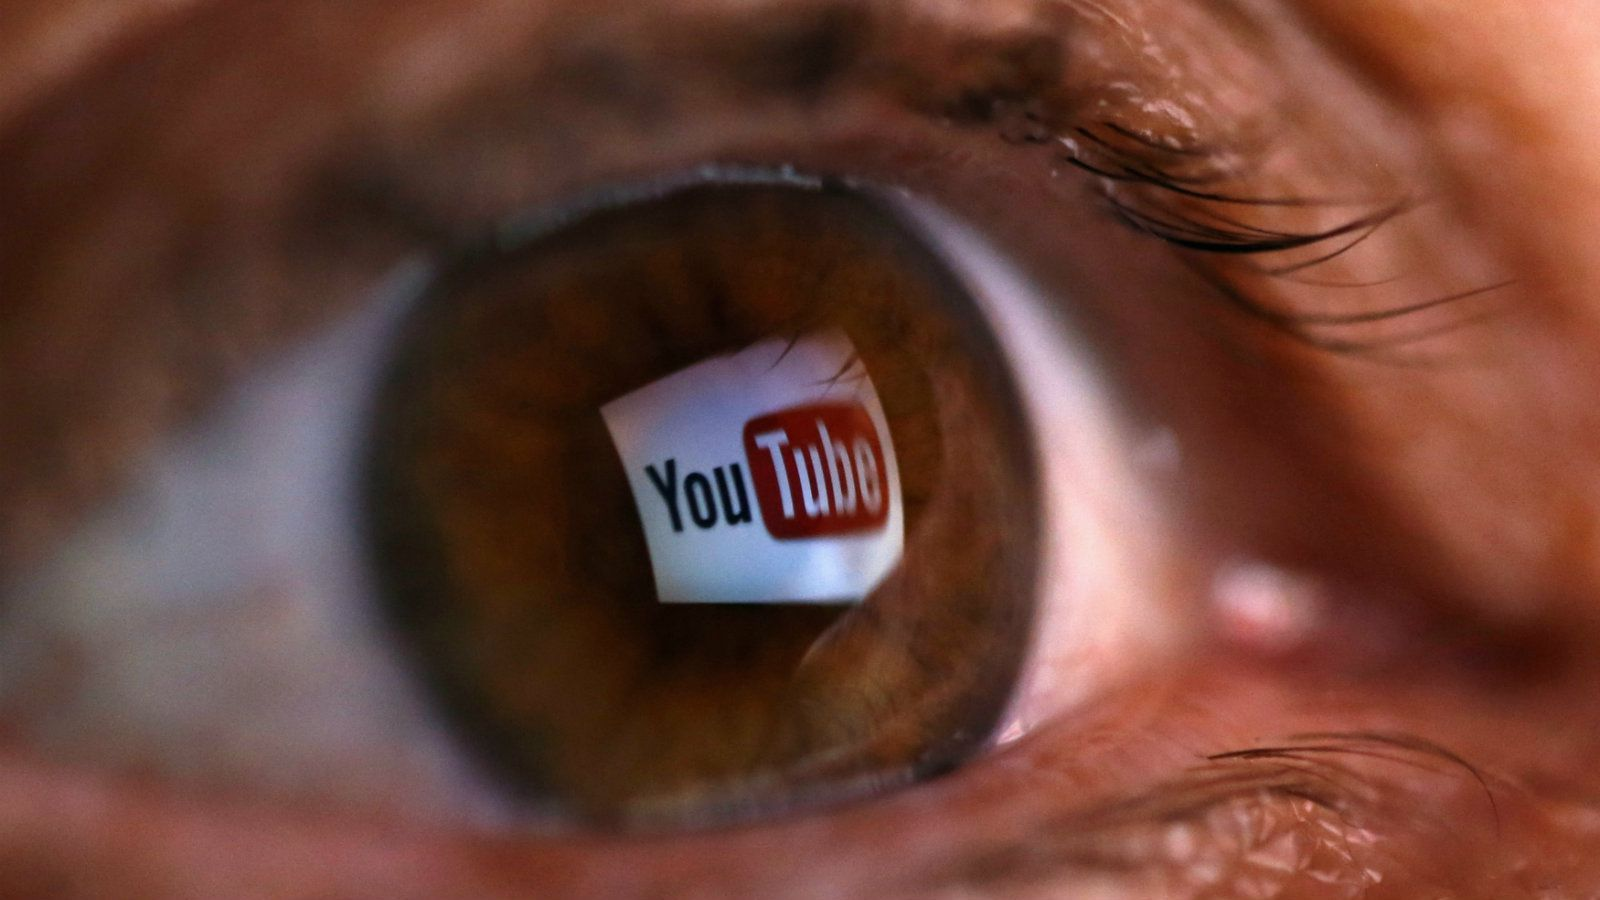 YouTube alters search results to appease pro-abortion Leftists who seek total domination over all online content